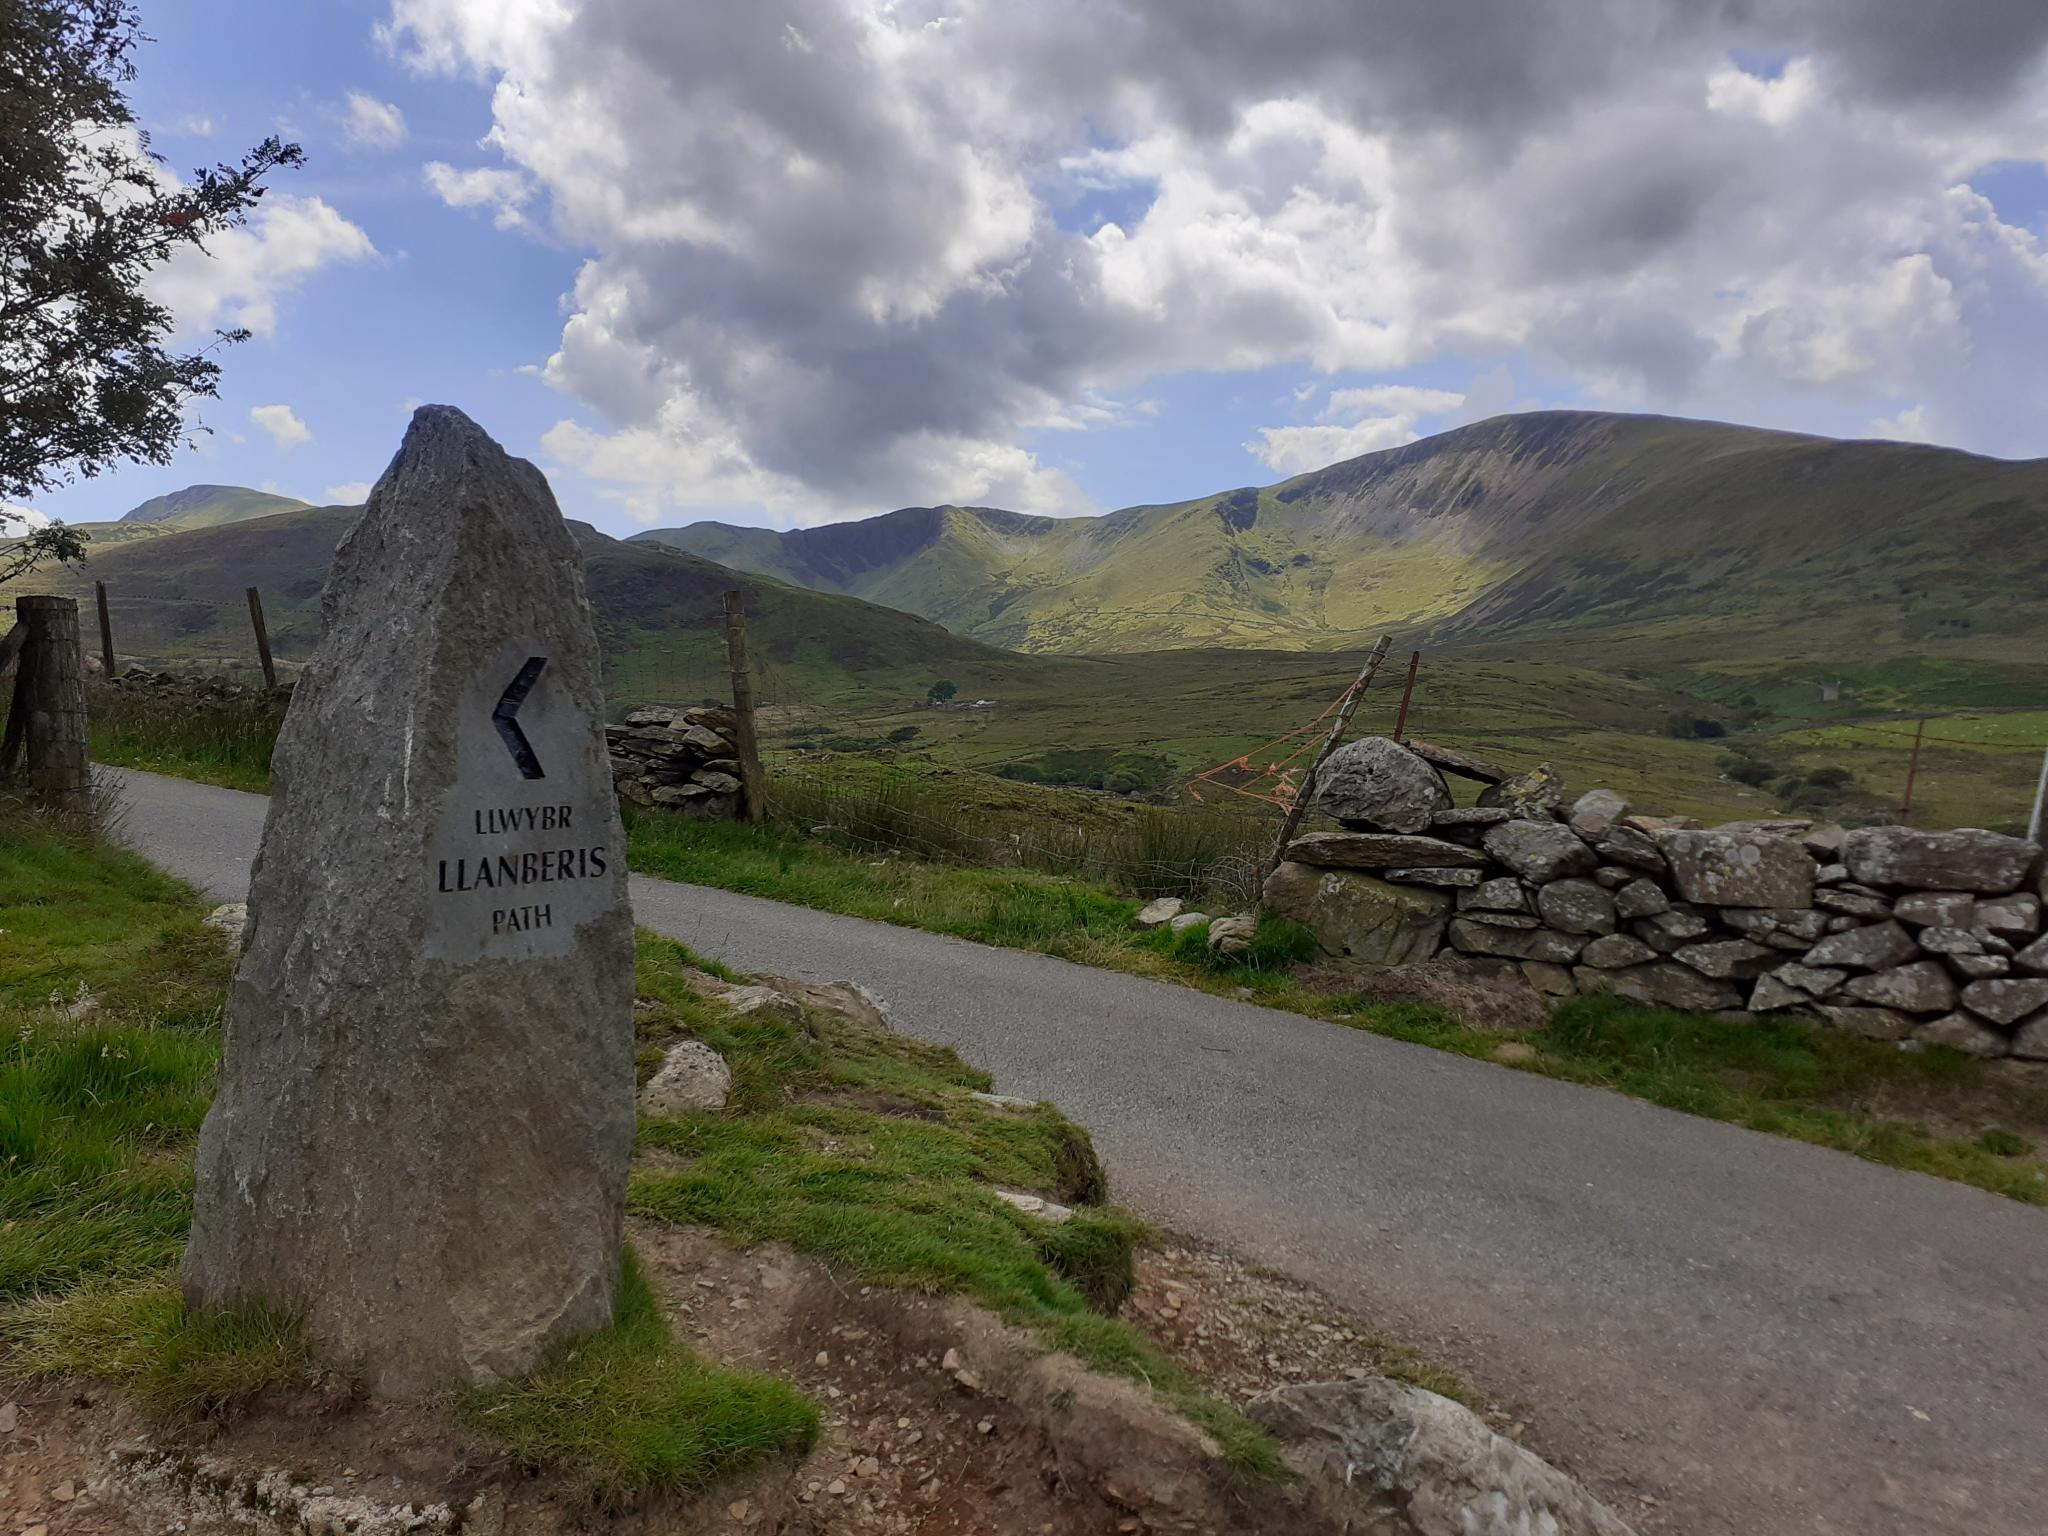 Chitty's Mountain mission to the top of Wales.-20200721_150452-jpg